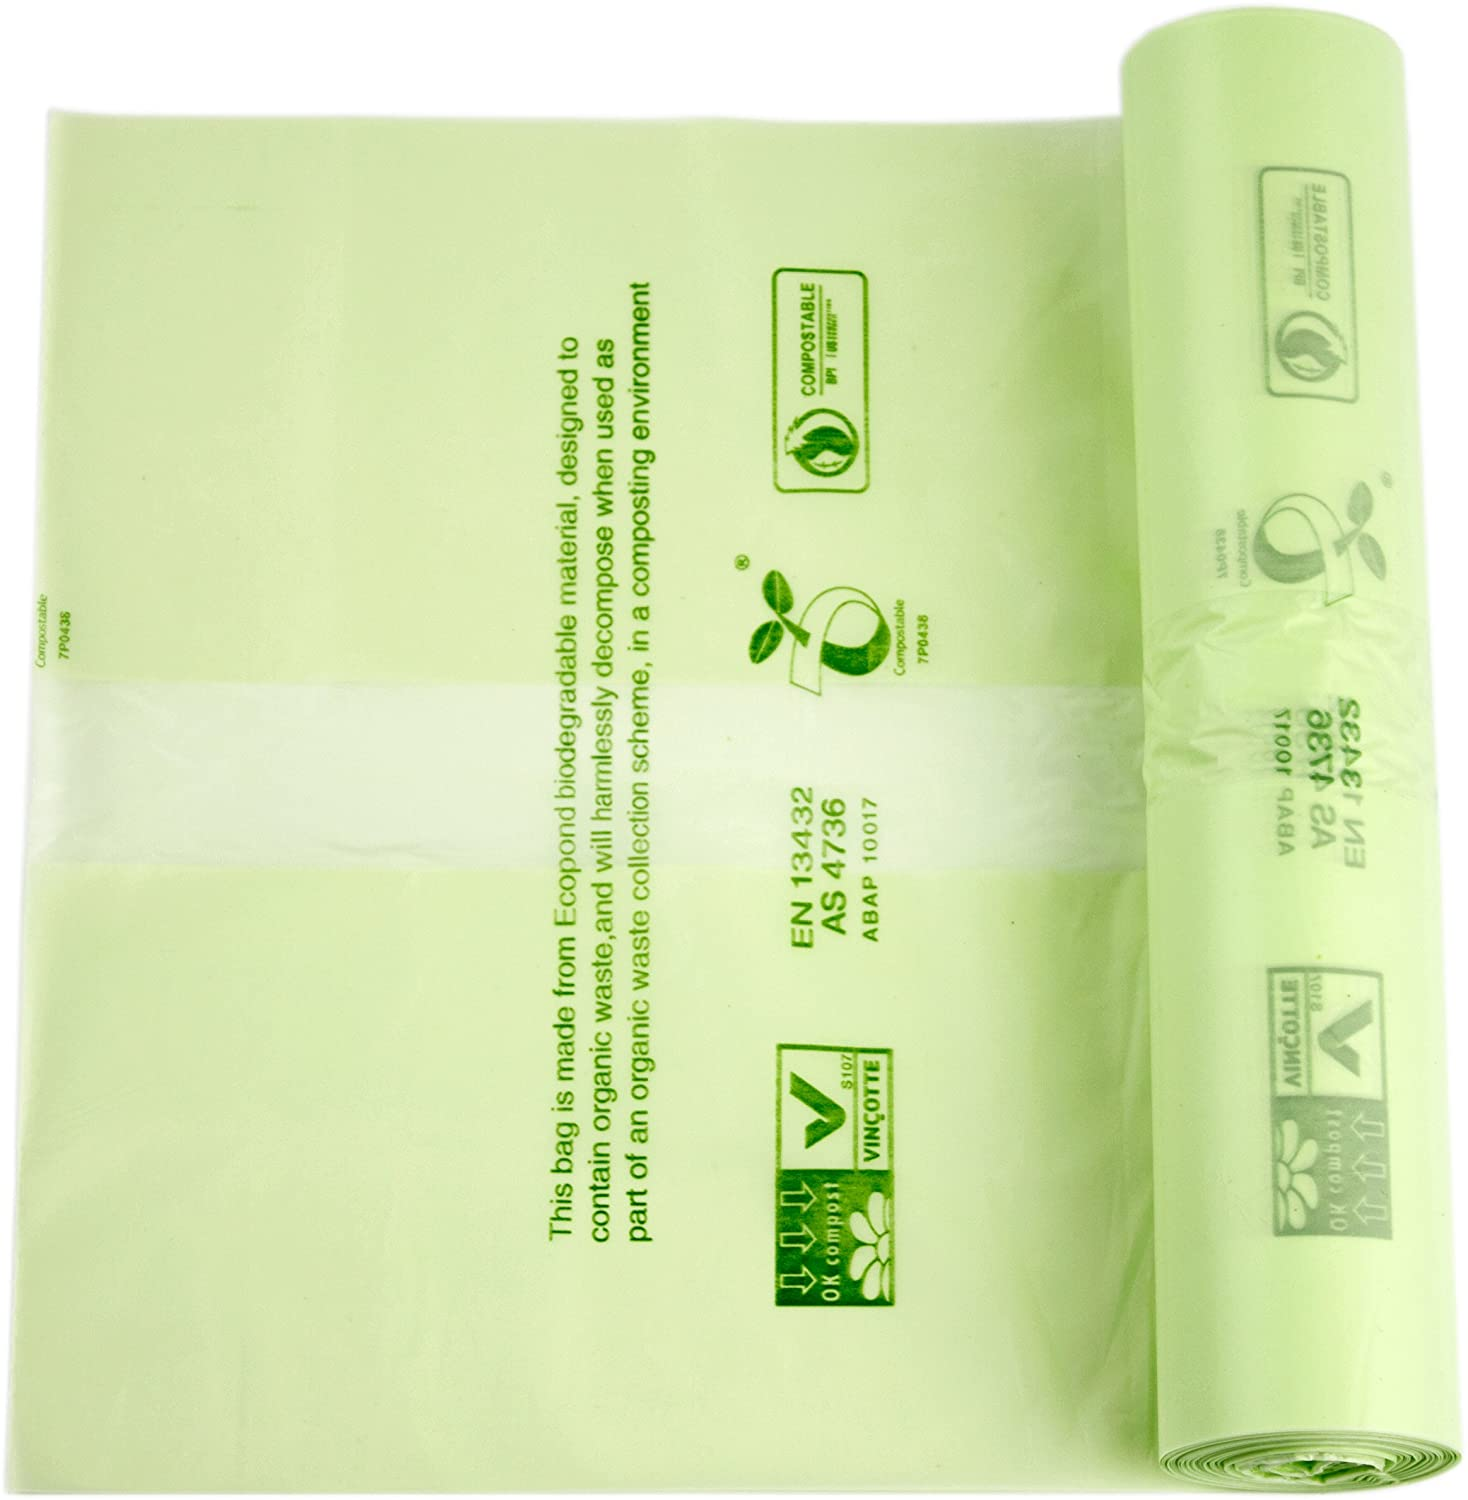 50 x Alina 6L Compostable Kitchen Caddy Bin Liner / Food Waste Compost Bin Bag / Biodegradable Green 6 Litre Sack with Alina Composting Guide (50 bags)